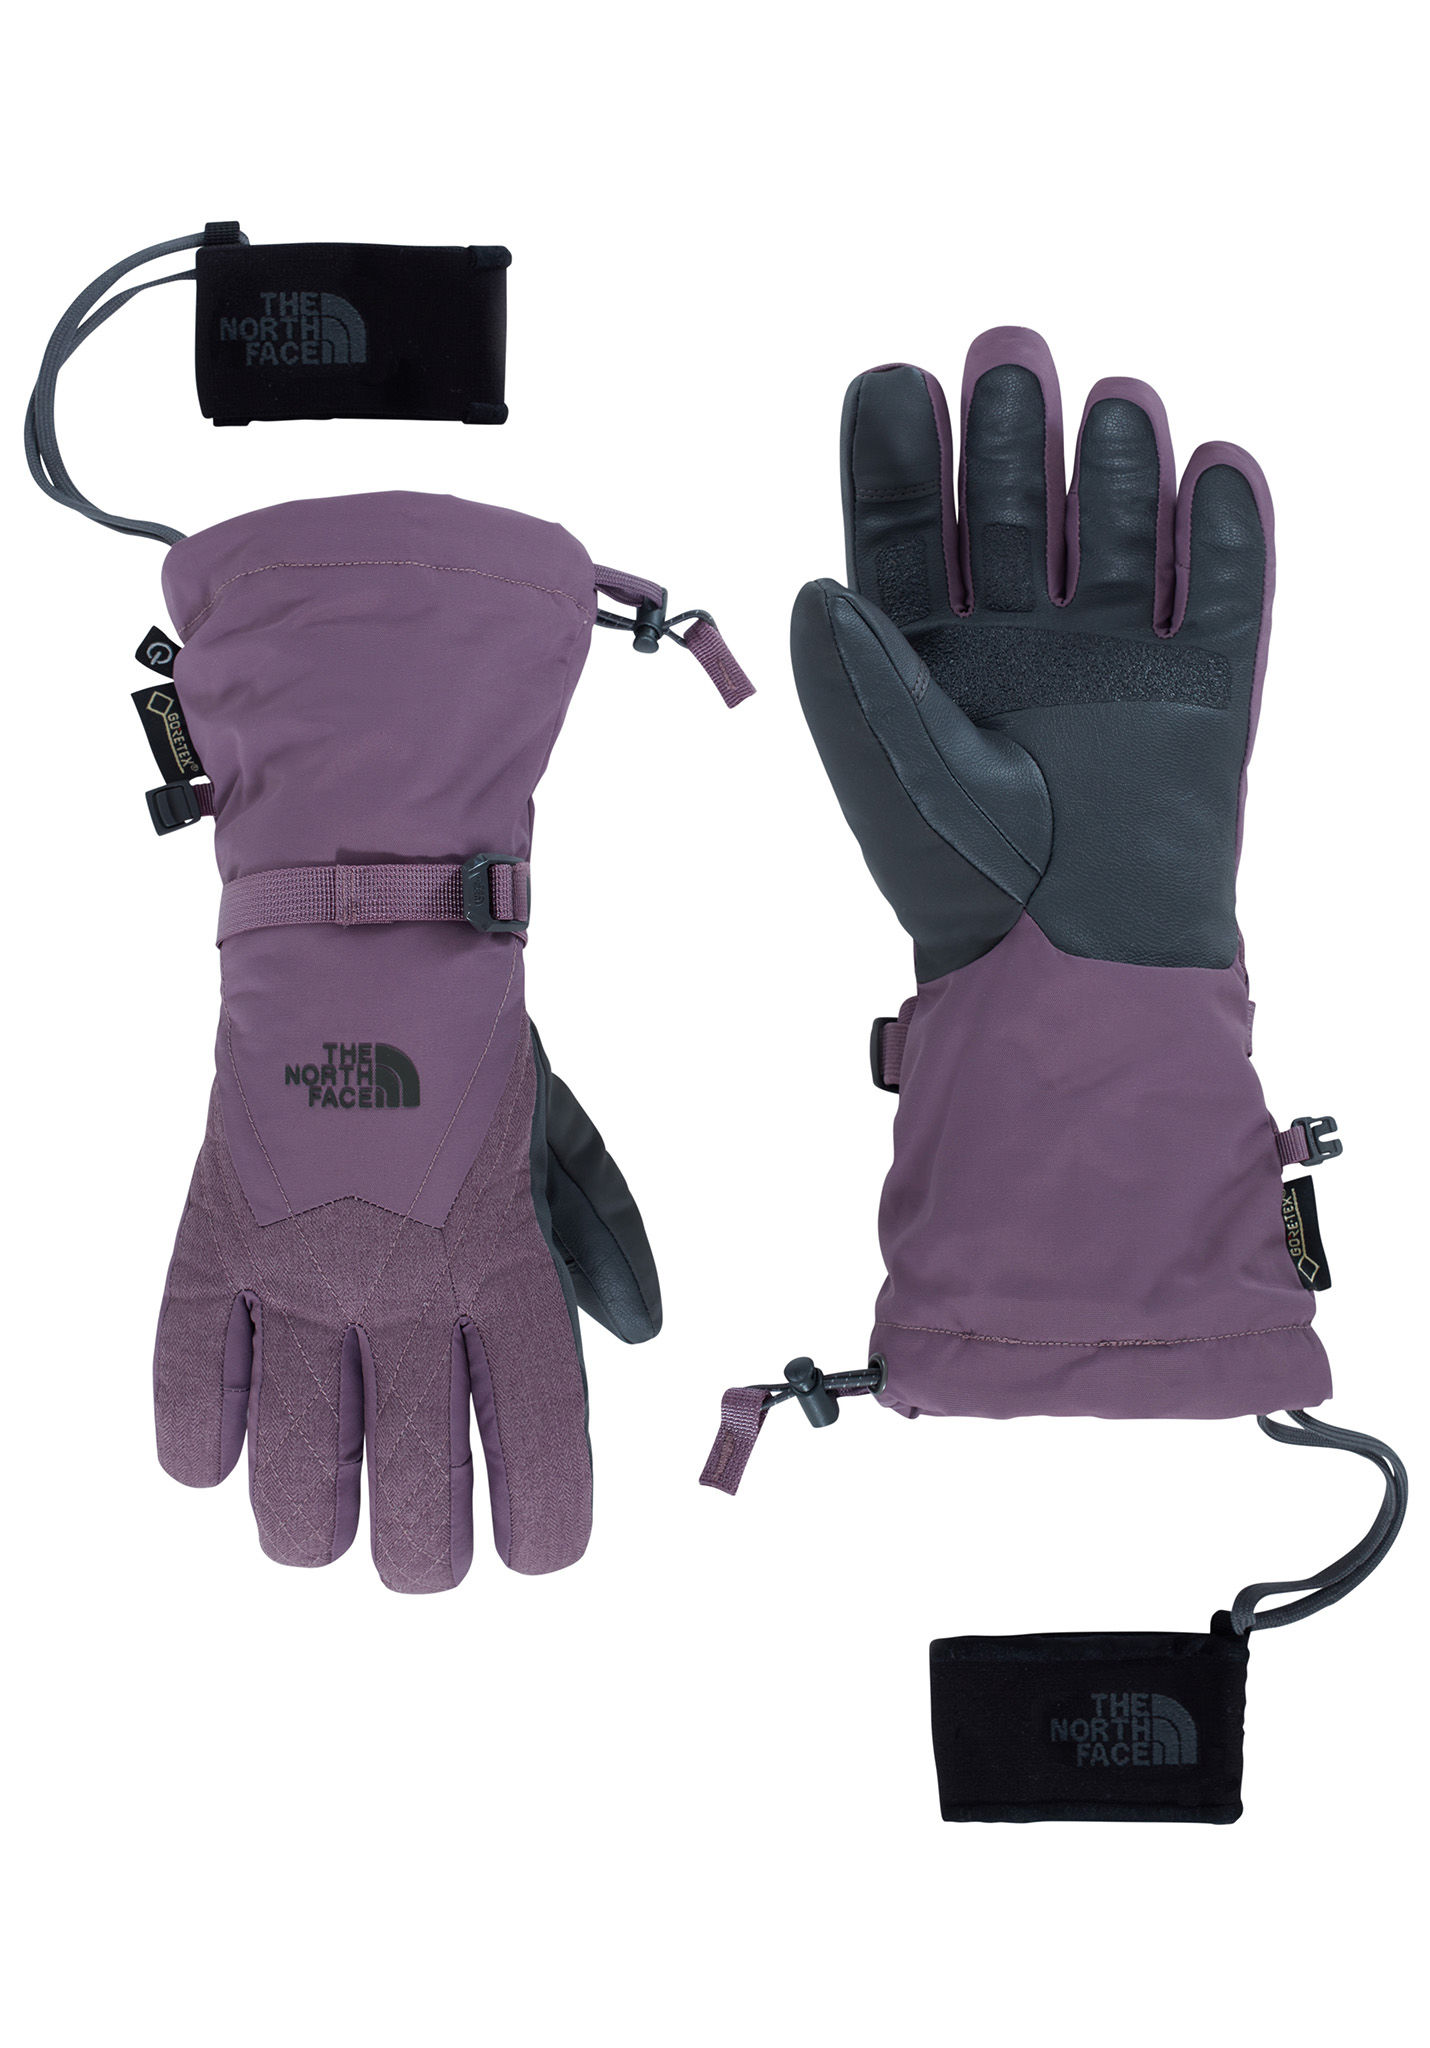 fc1952c06 THE NORTH FACE Montana GTX - Gloves for Women - Purple